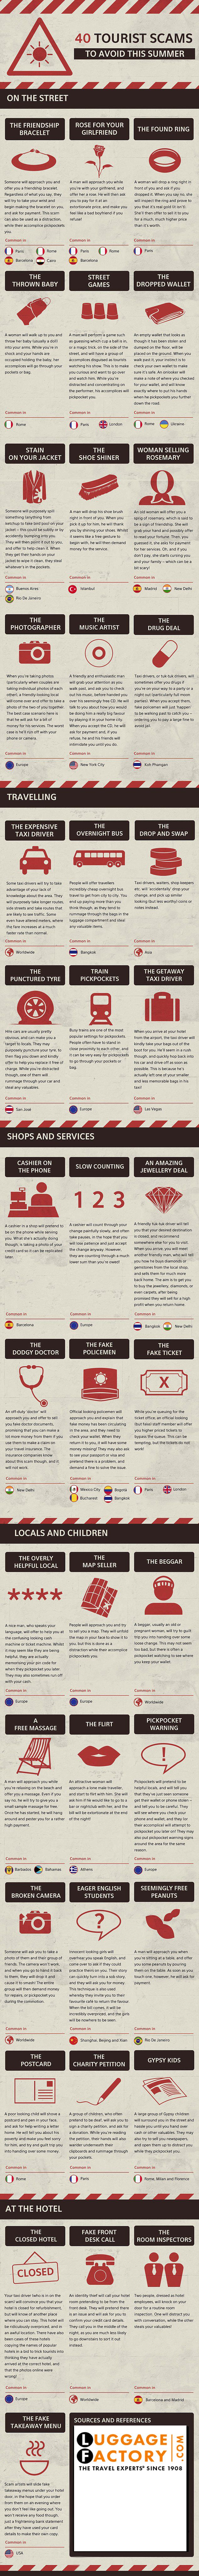 the most common tourist frauds in Europe and Latin America, Things to watch out for when you travel. Re-Pin to prevent tourist fraud. from the Travel Experts http://www.luggagefactory.com